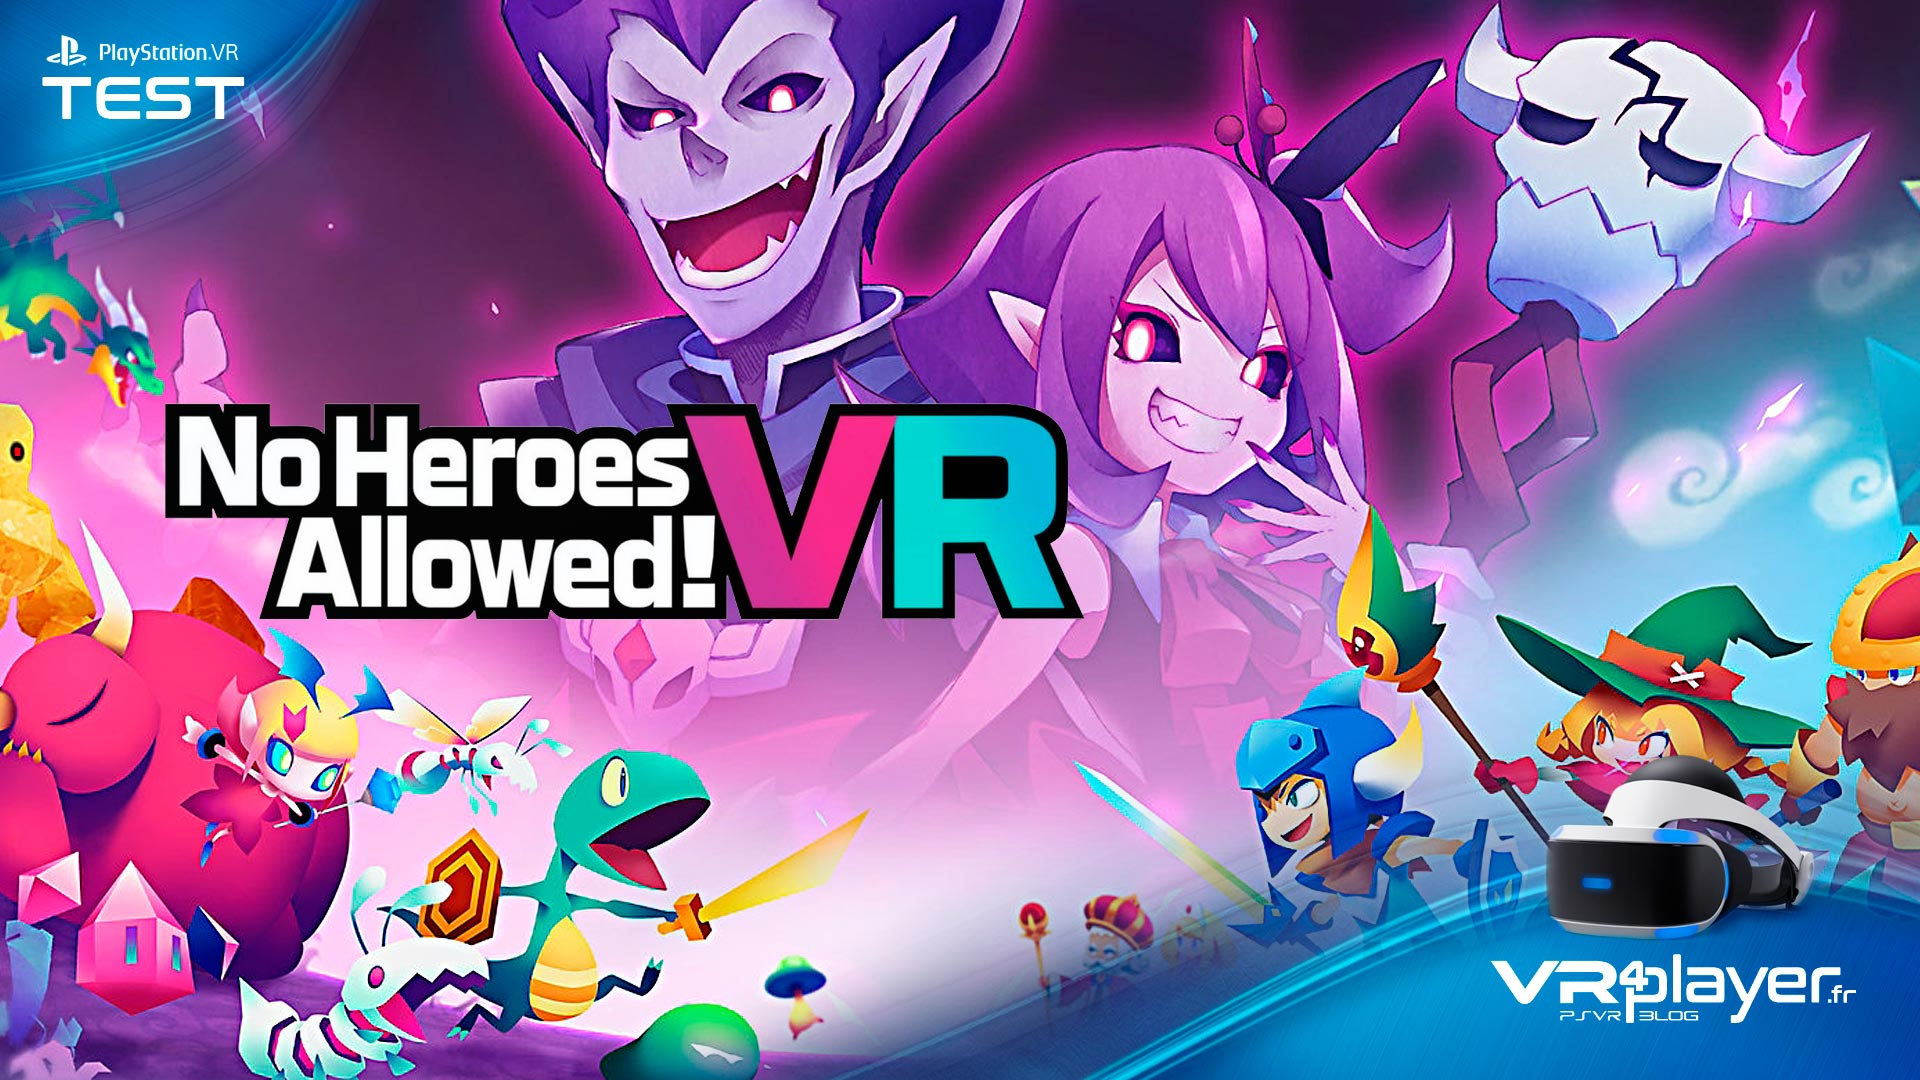 No Heroes Allowed! Test Review Vr4Player.fr